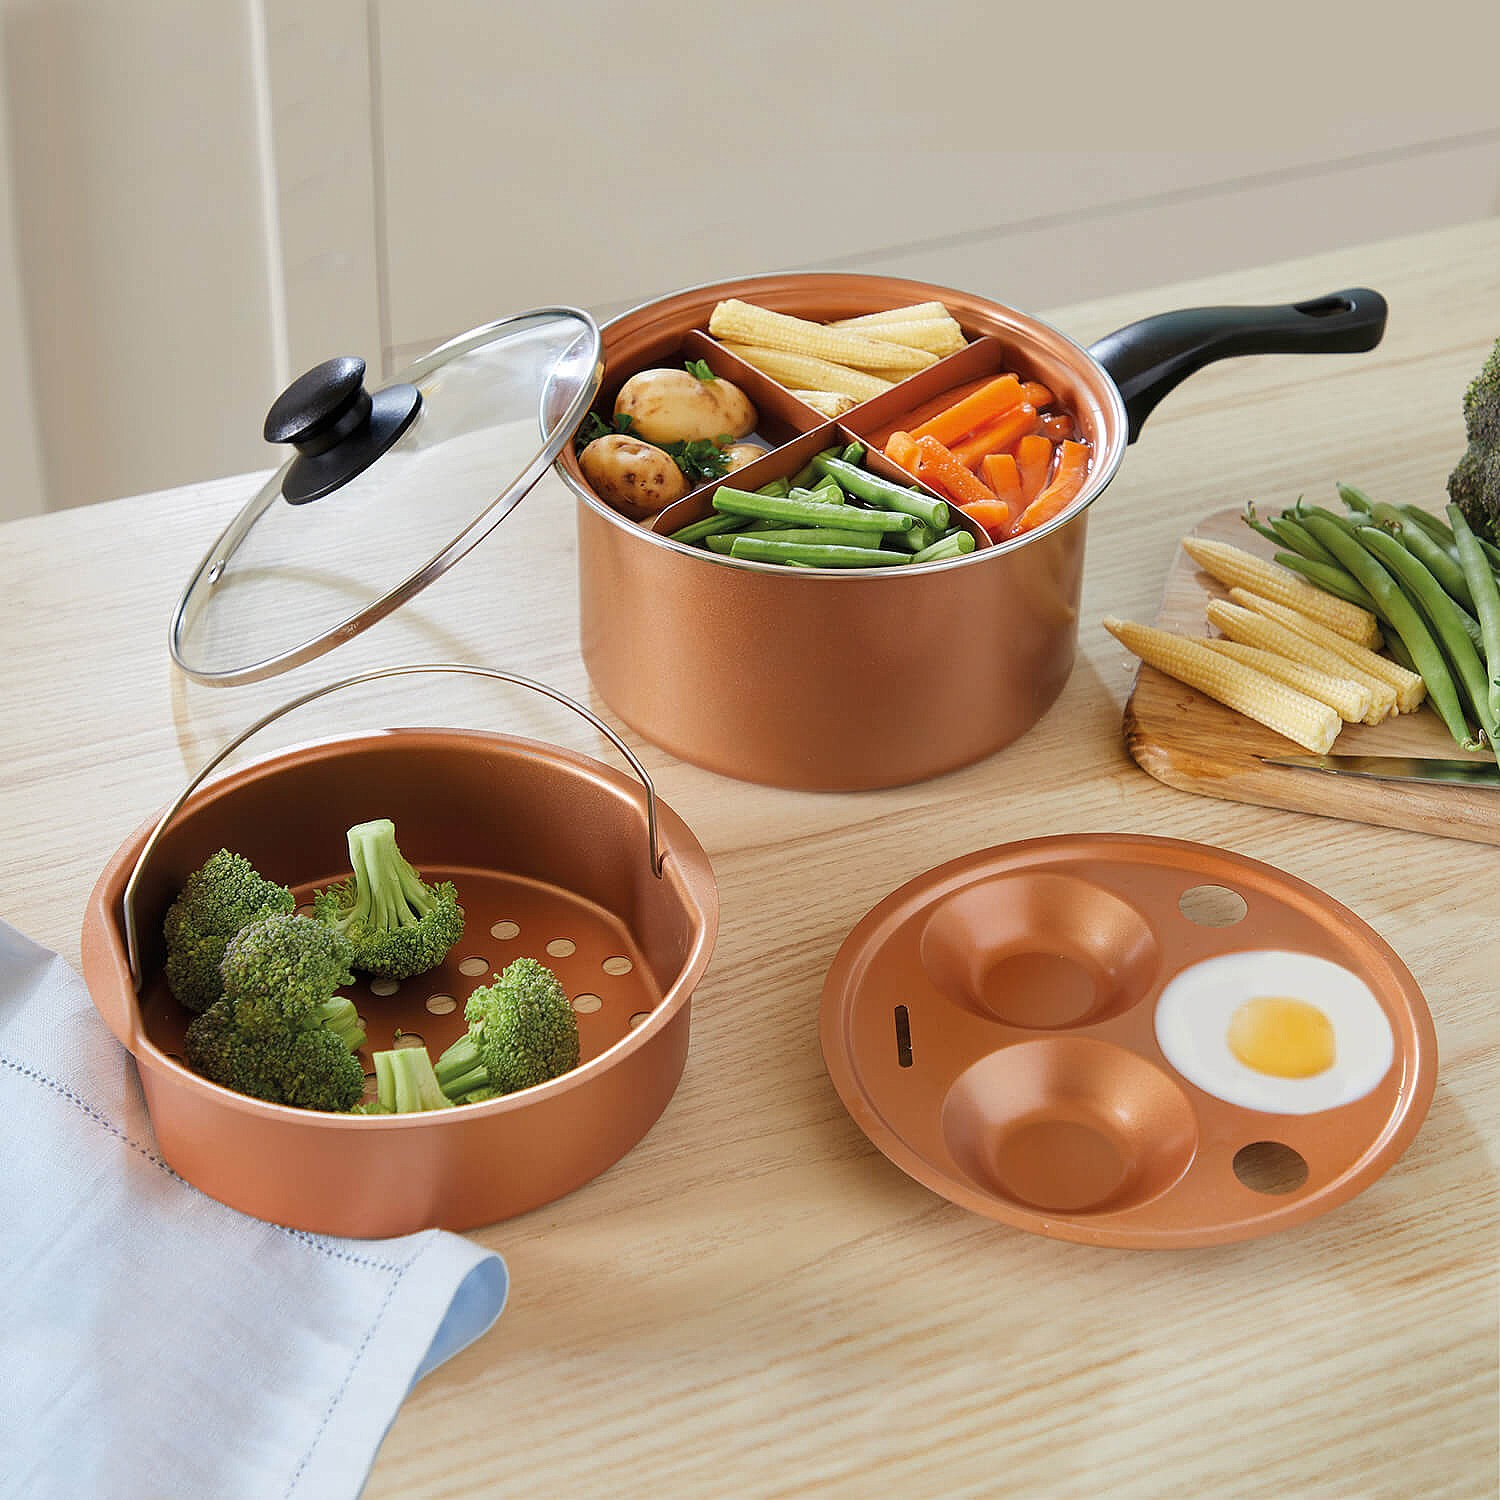 Copper King Copper-Infused Multi-Use Pan by Coopers of Stortford